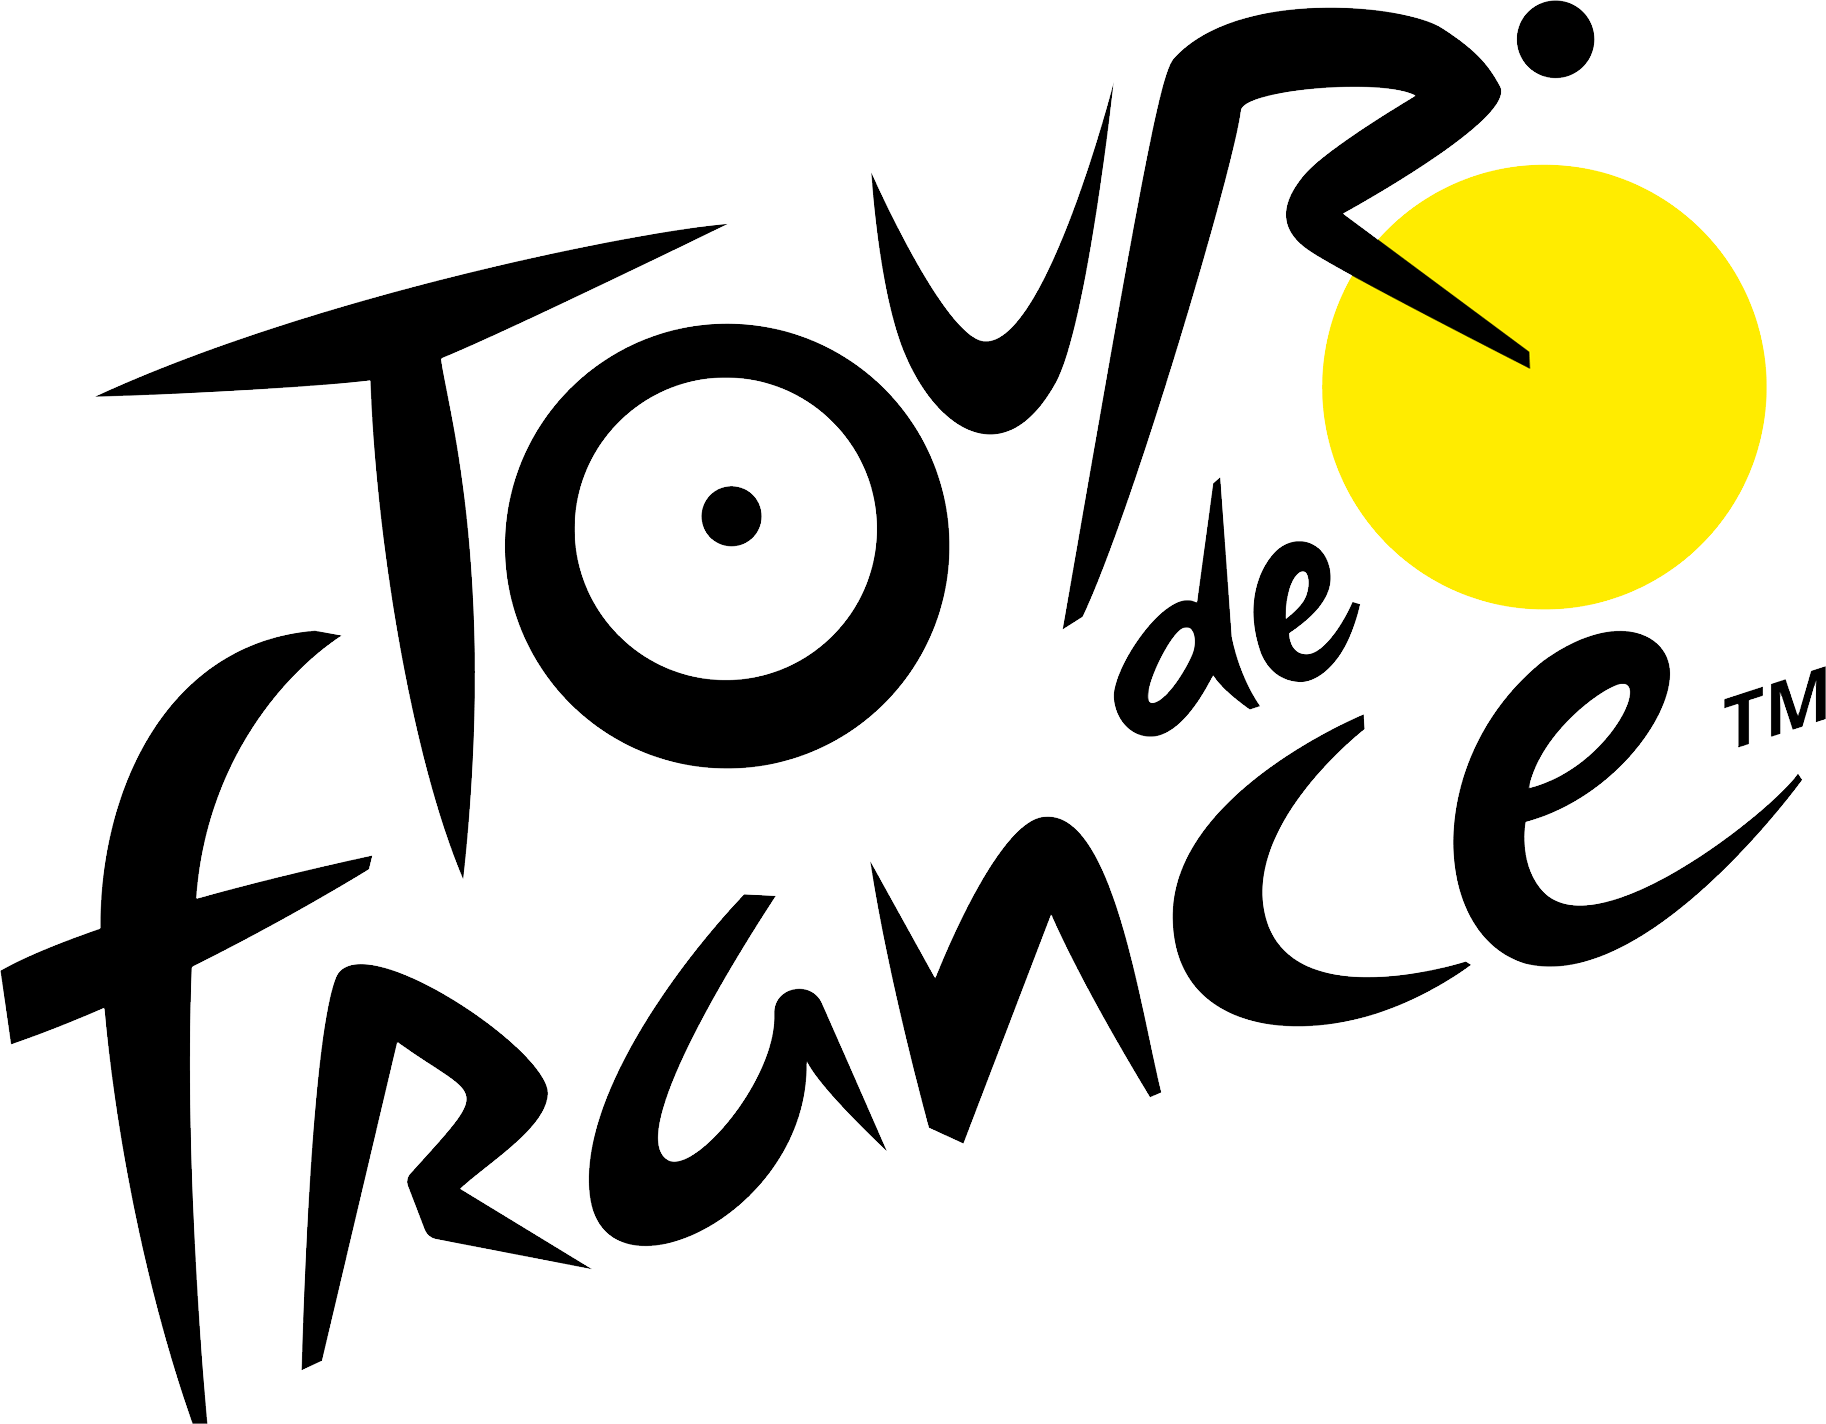 Tour de France logo PNG.